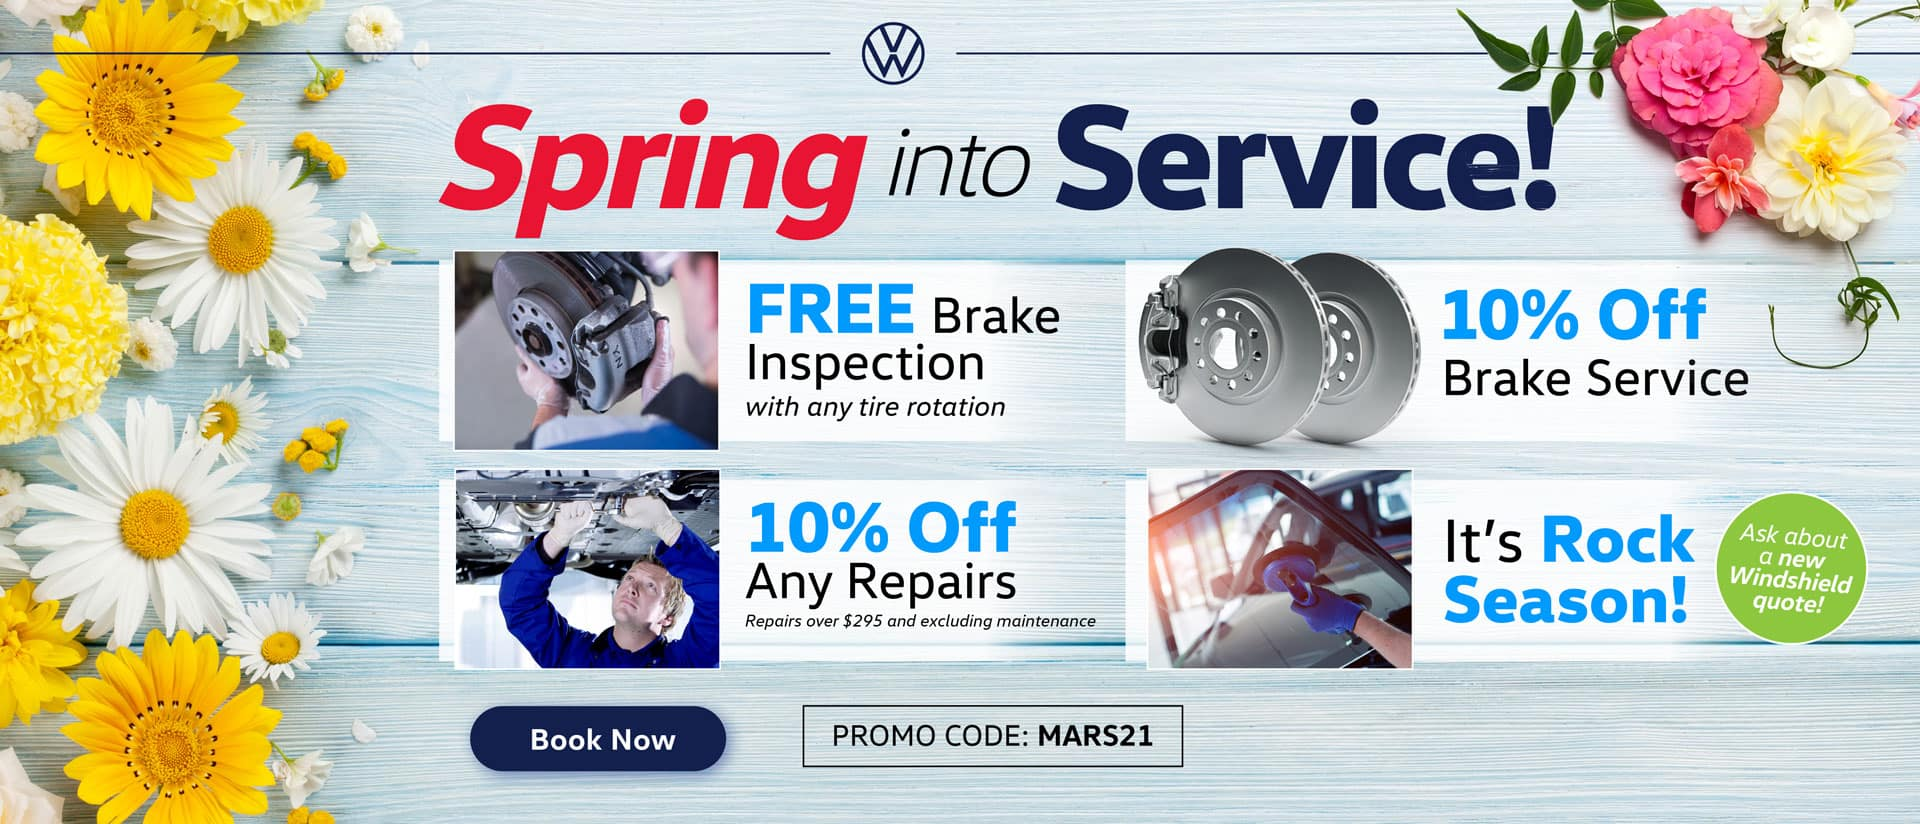 1527393_VW_MARCH_Service_WB_NVW